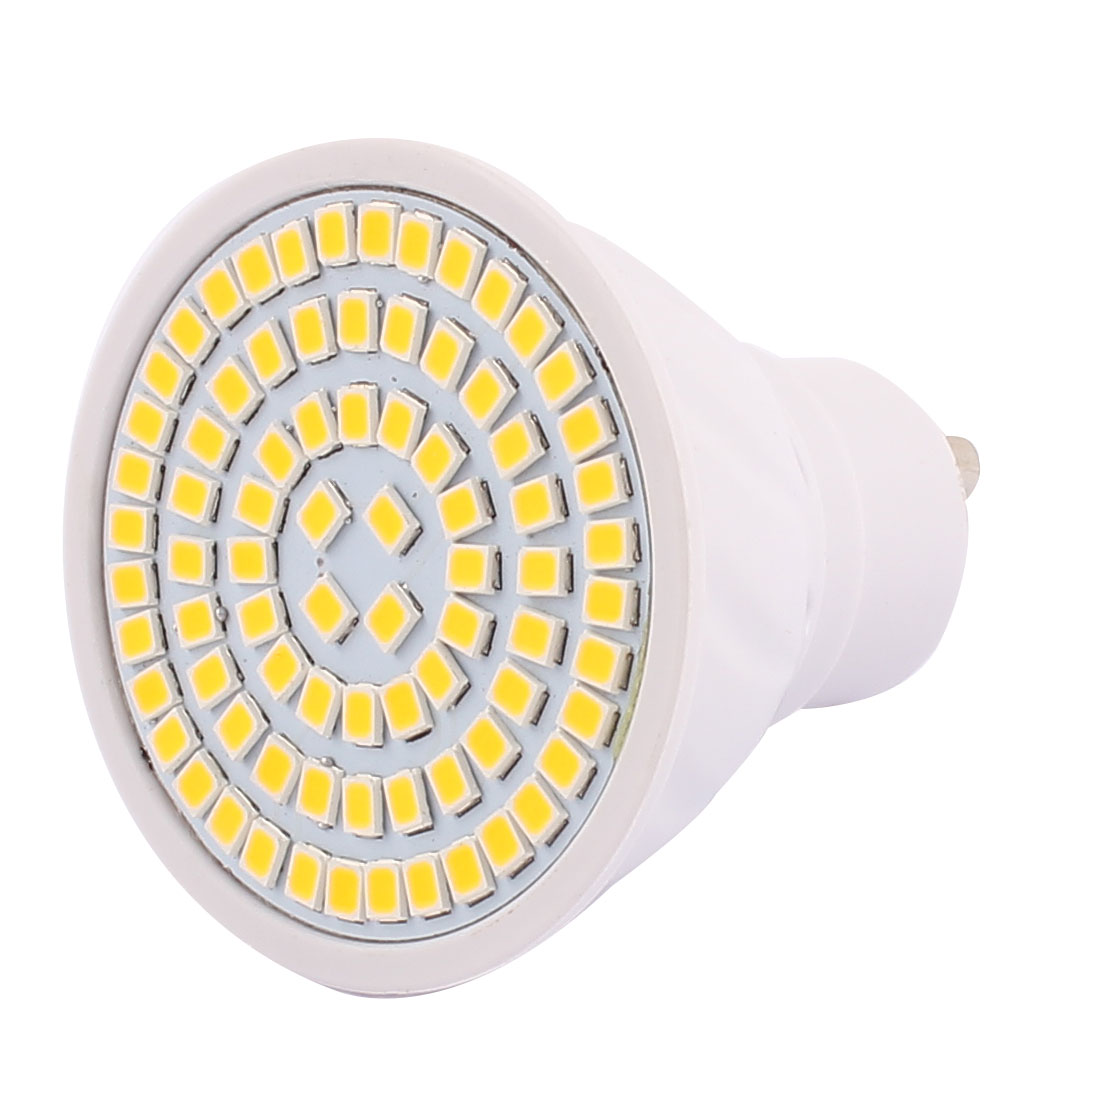 GU10 SMD 2835 80 LEDs Plastic Energy-Saving LED Lamp Bulb Warm White AC 110V 8W